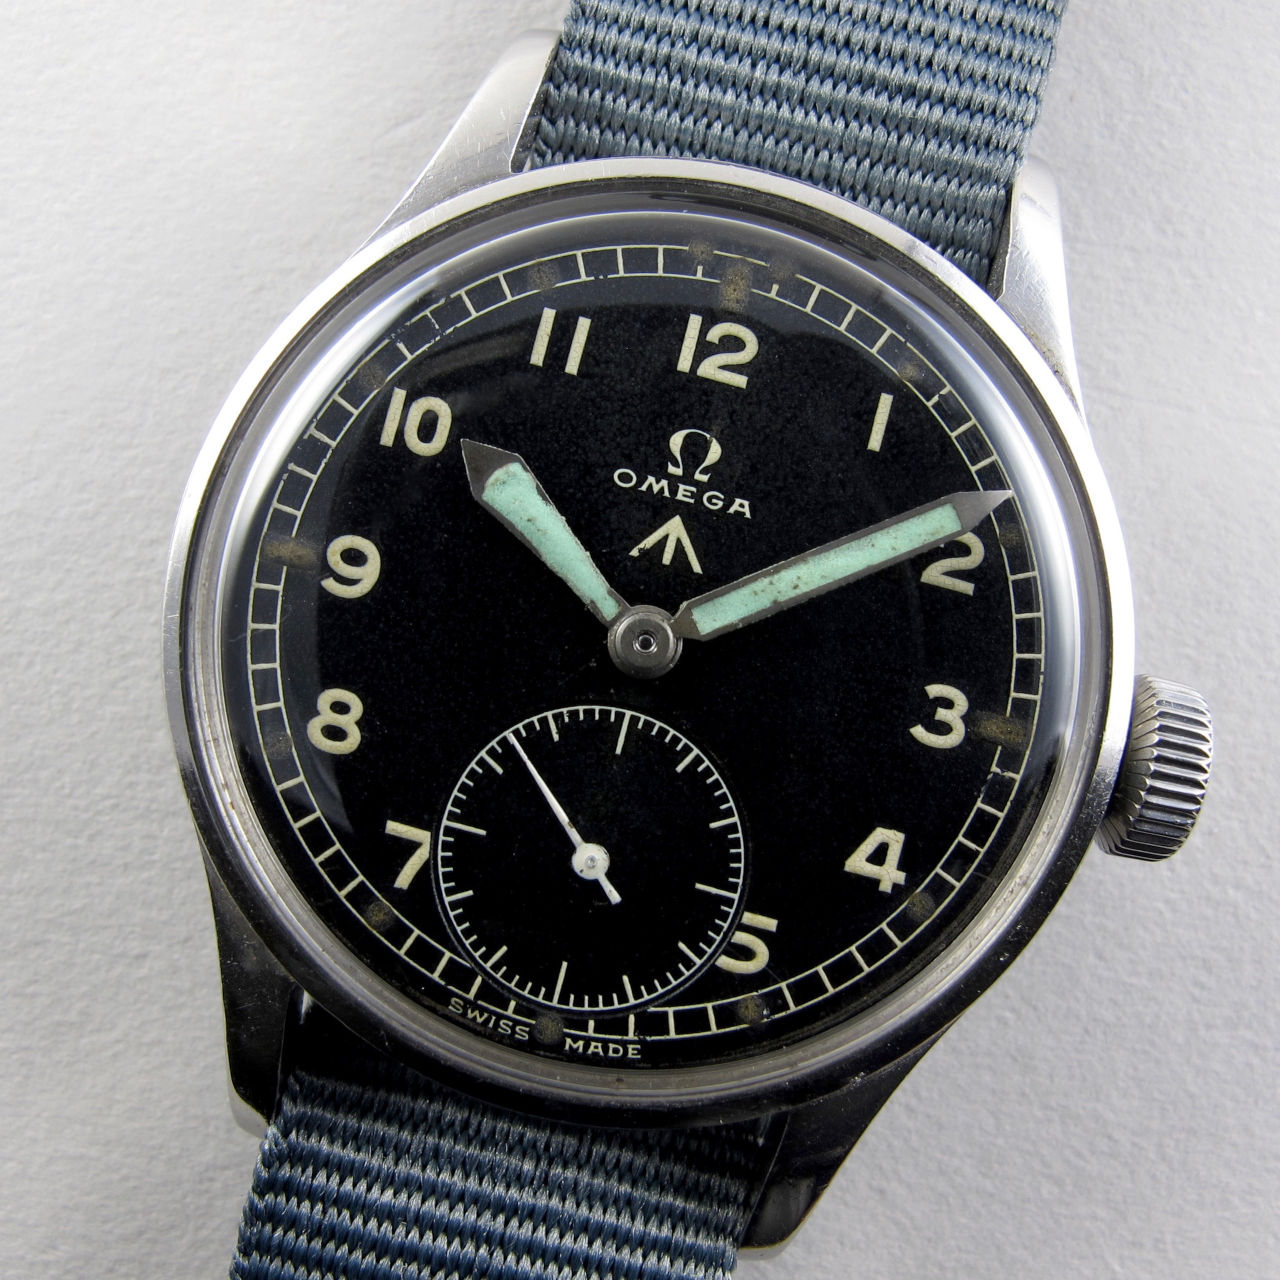 Omega WWW military steel vintage wristwatch, circa 1945